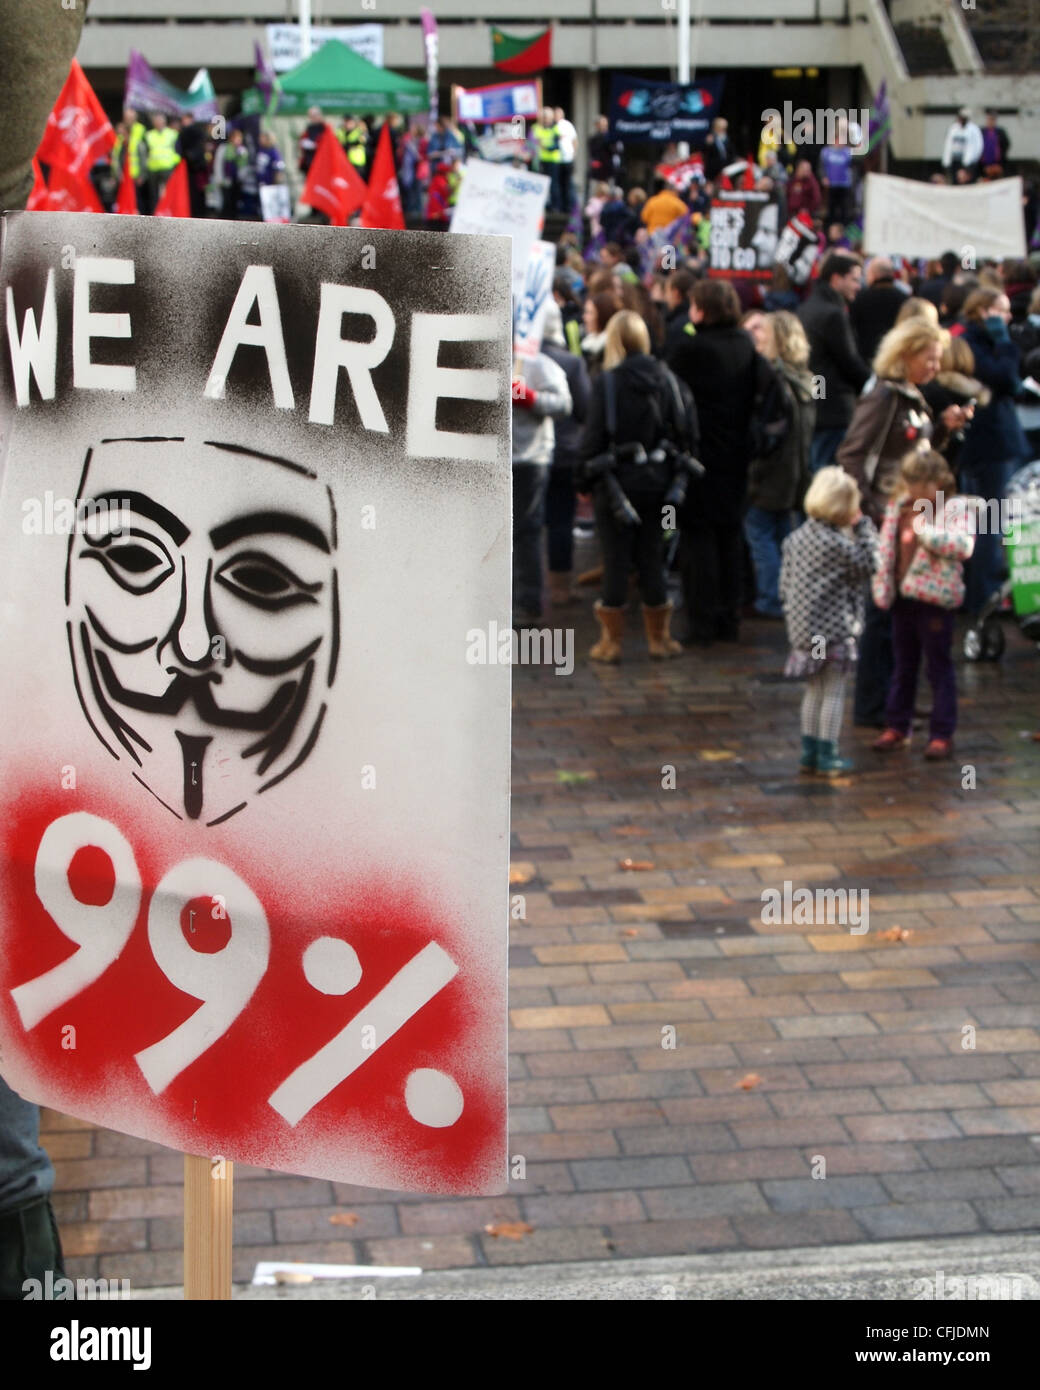 We are 99% placard with the guy Fawkes mask symbol and protesters in the background - Stock Image